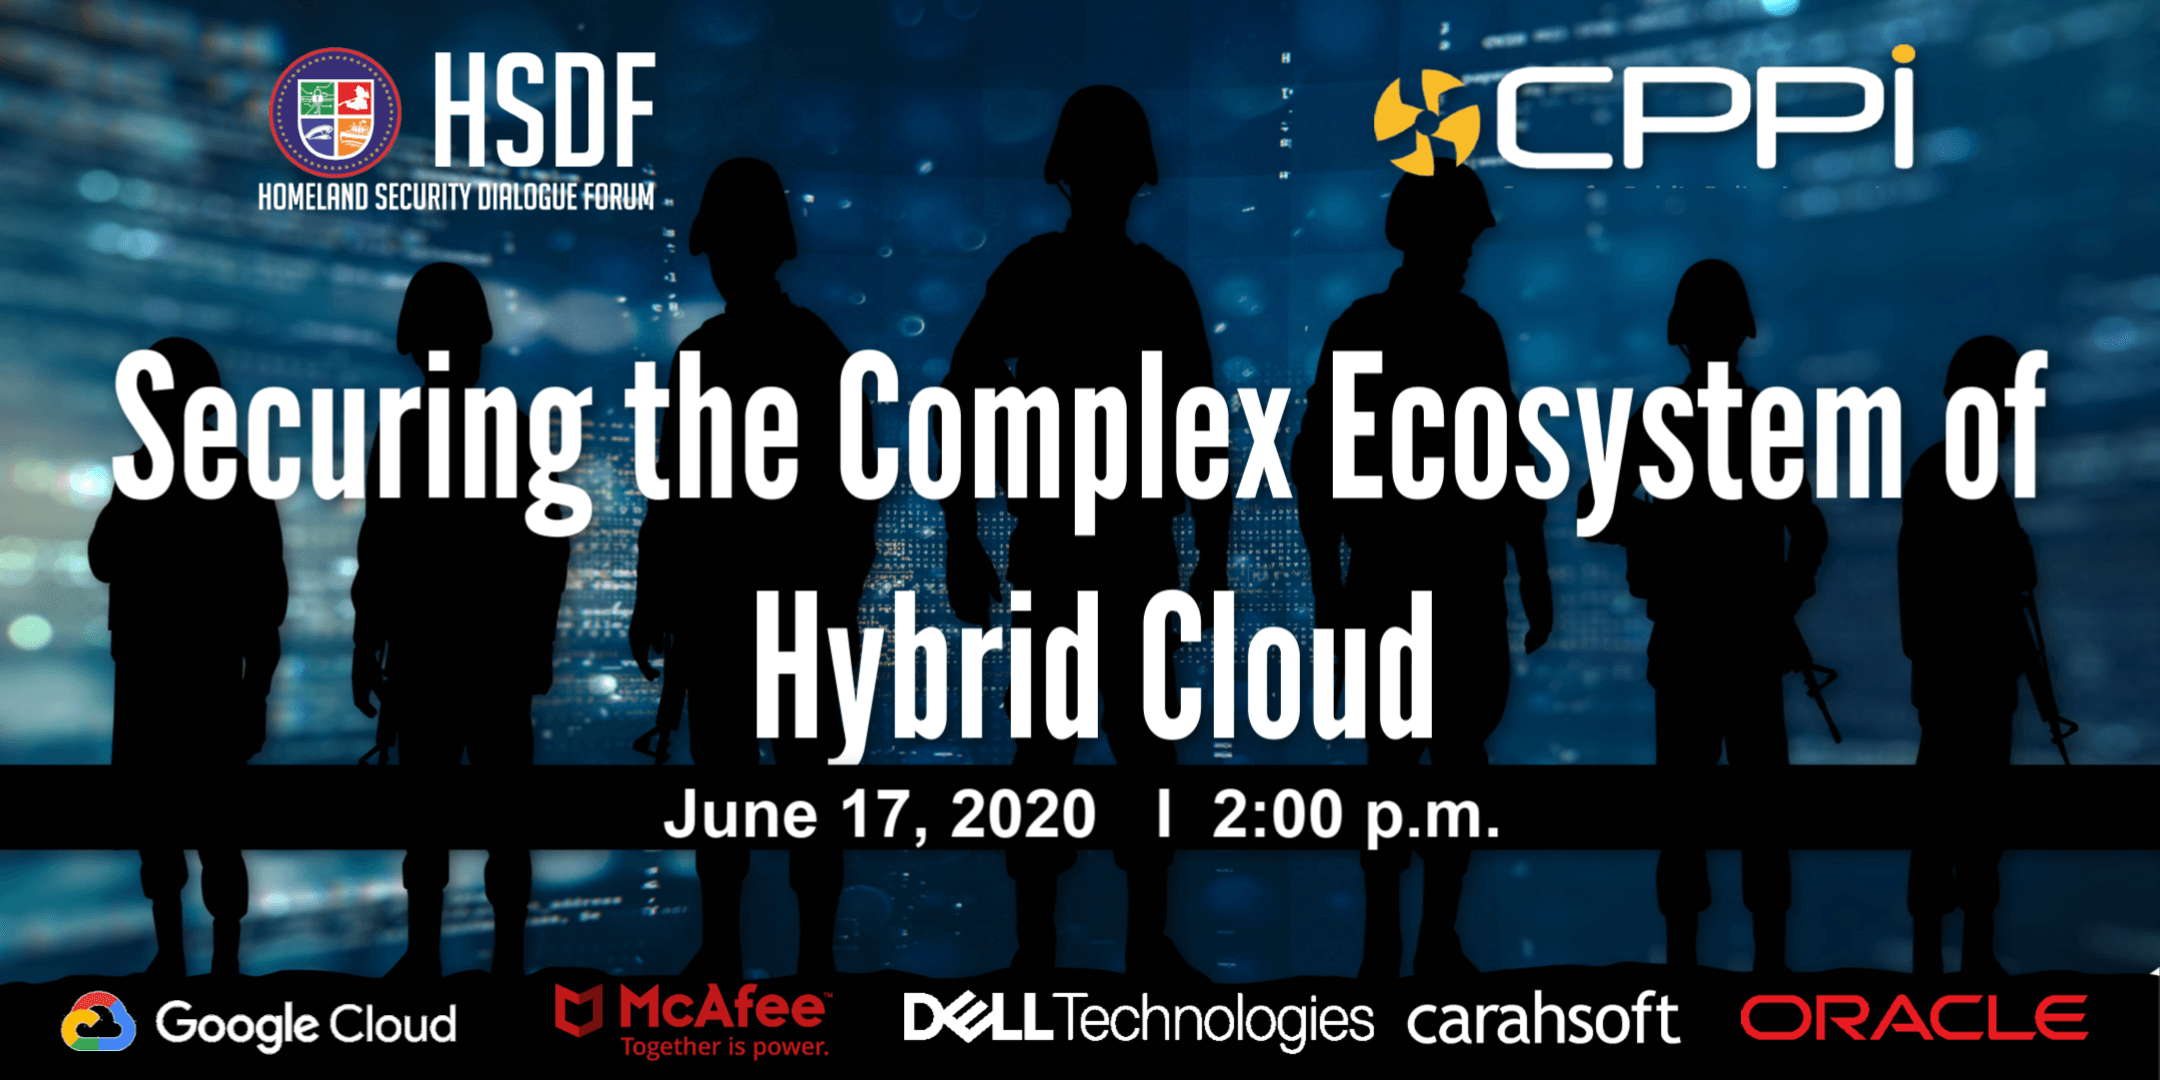 Securing the Complex Ecosystem of Hybrid Cloud  Virtual Symposium